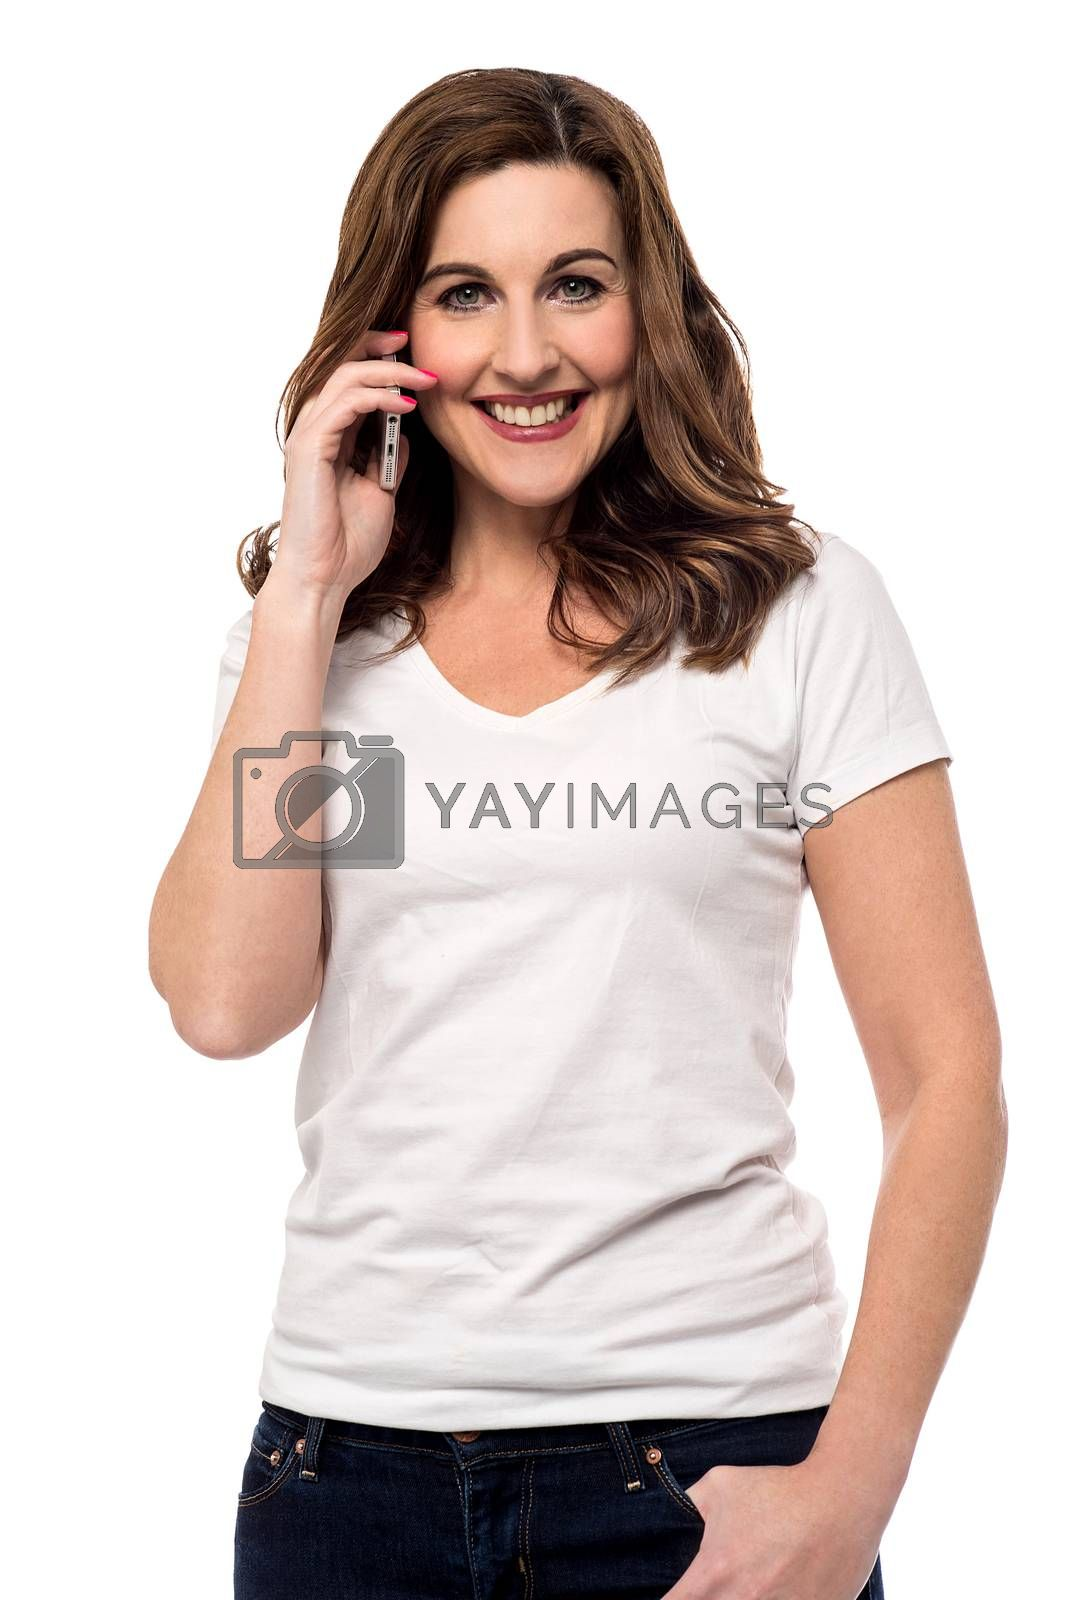 Smiling woman talking on her cell phone